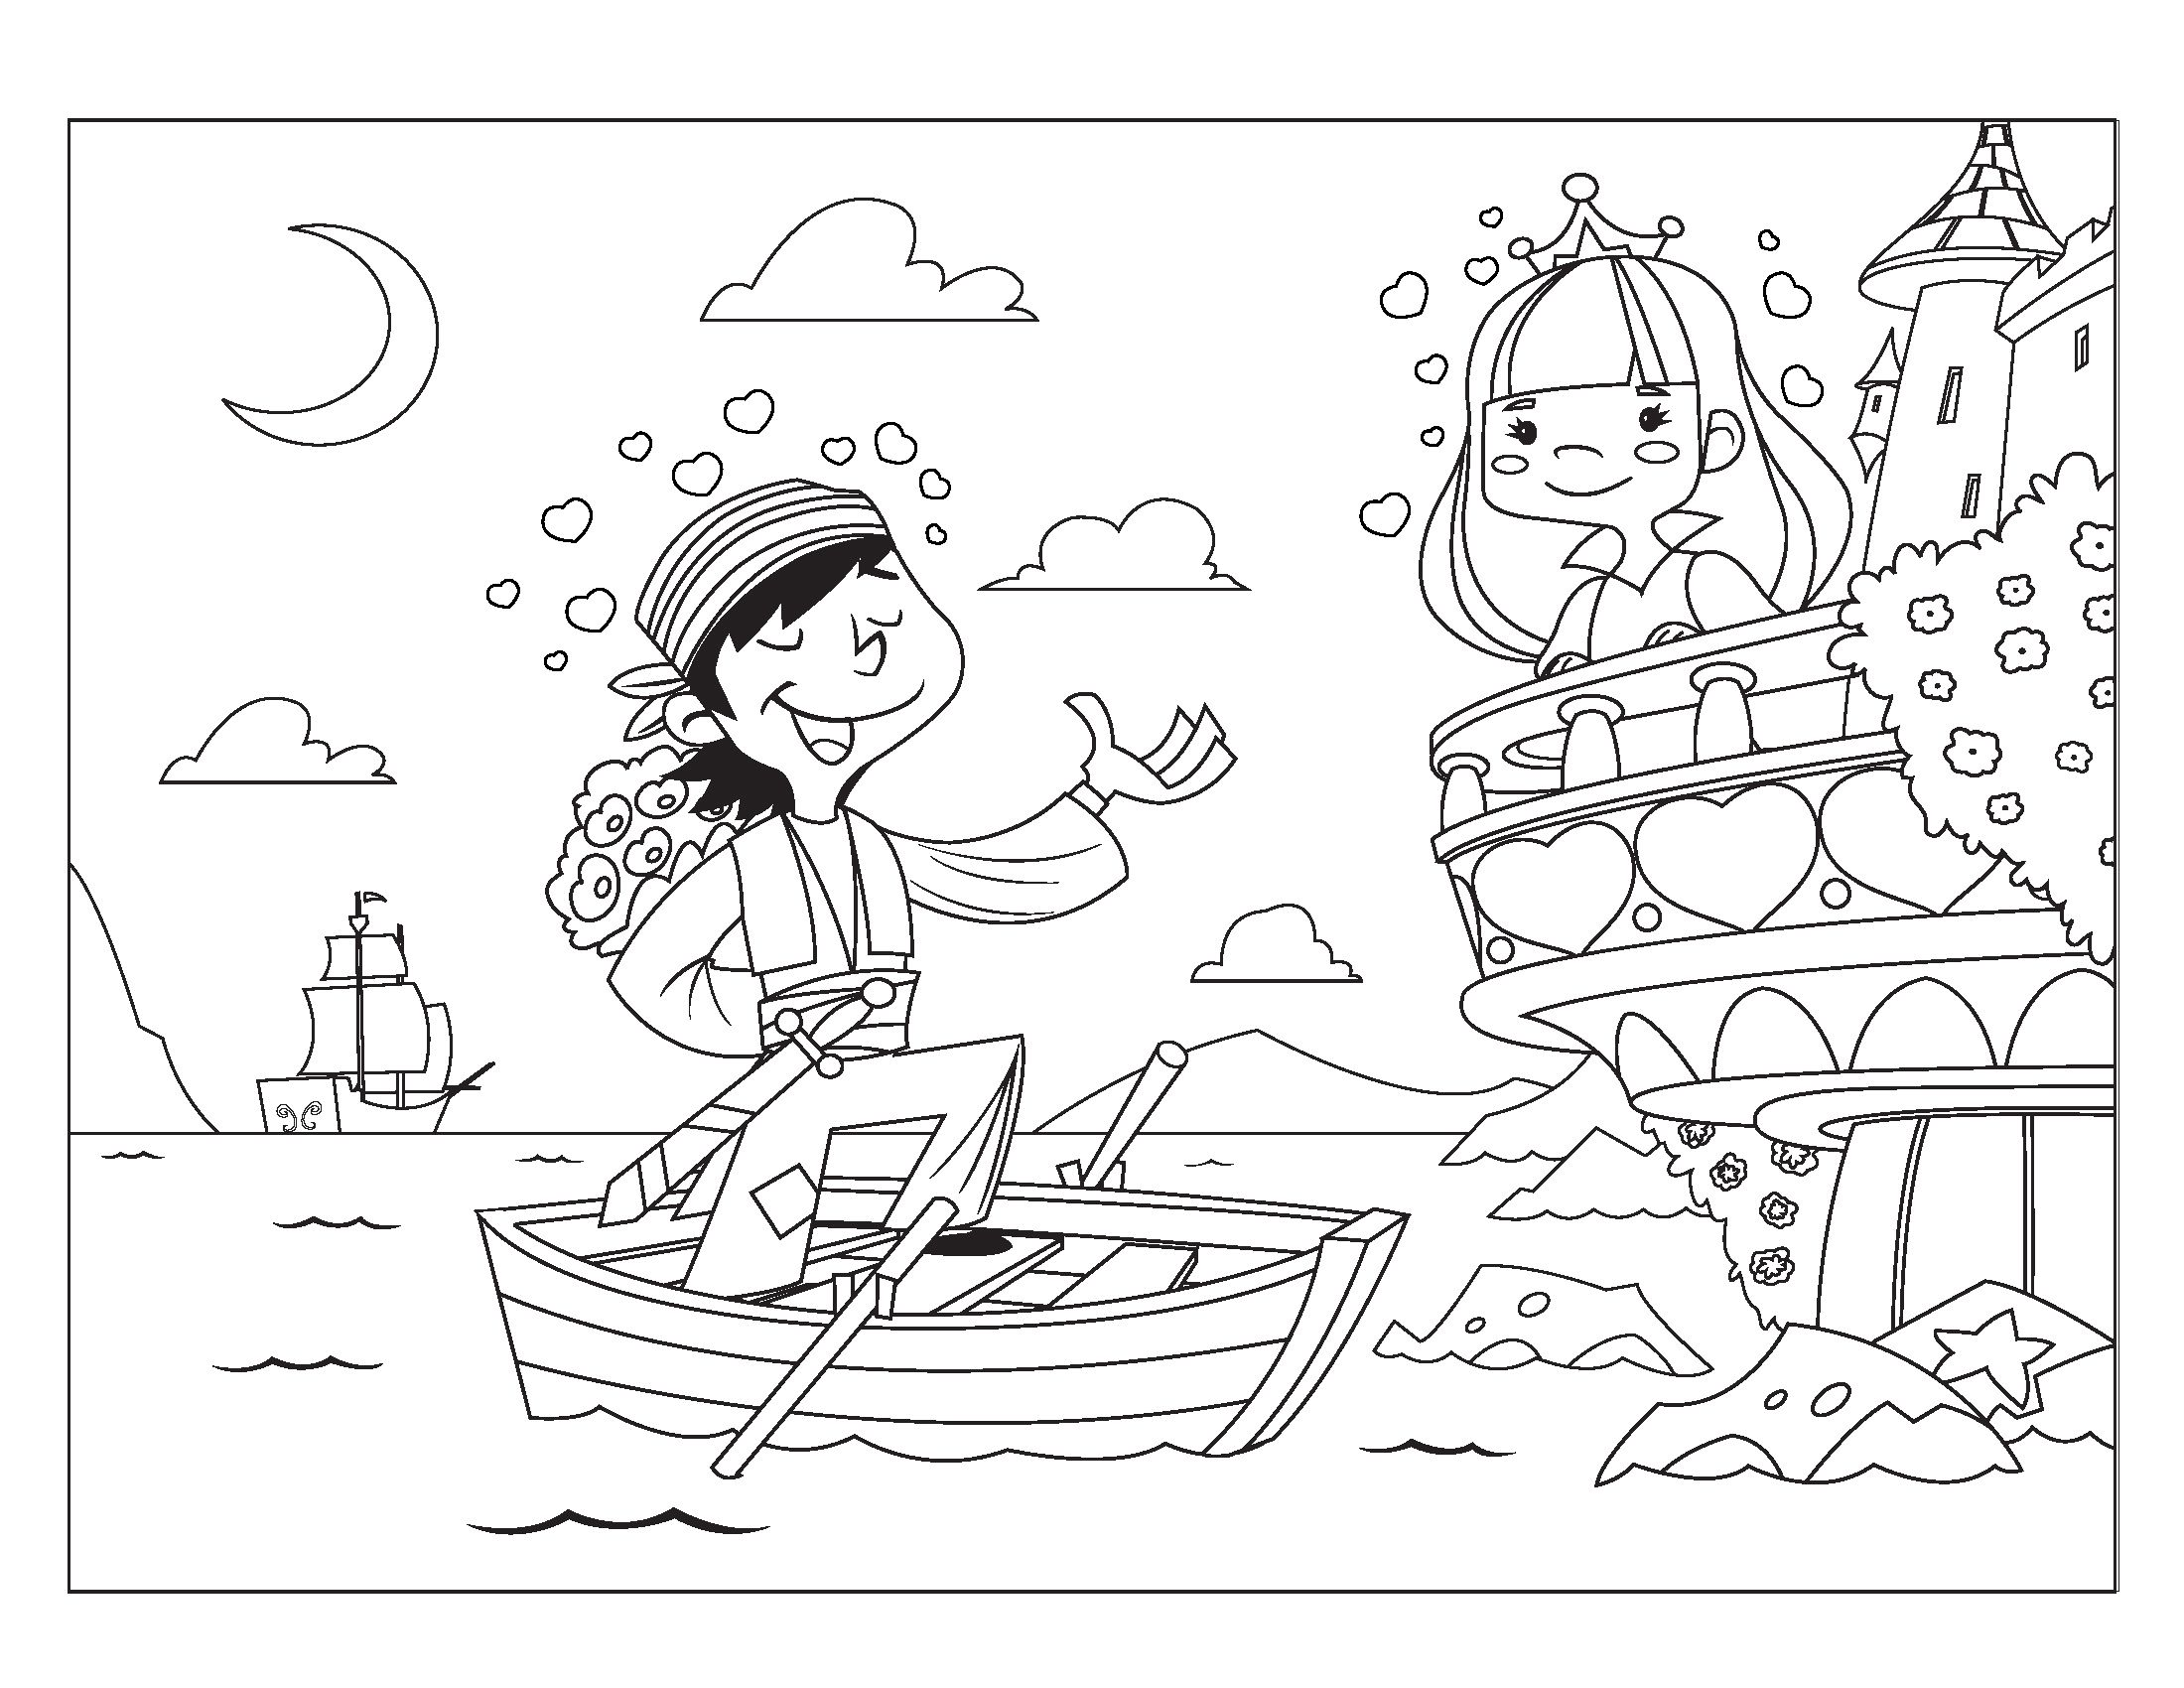 Coloring Page Pirate Princess Jpg 2200 1700 Pirate